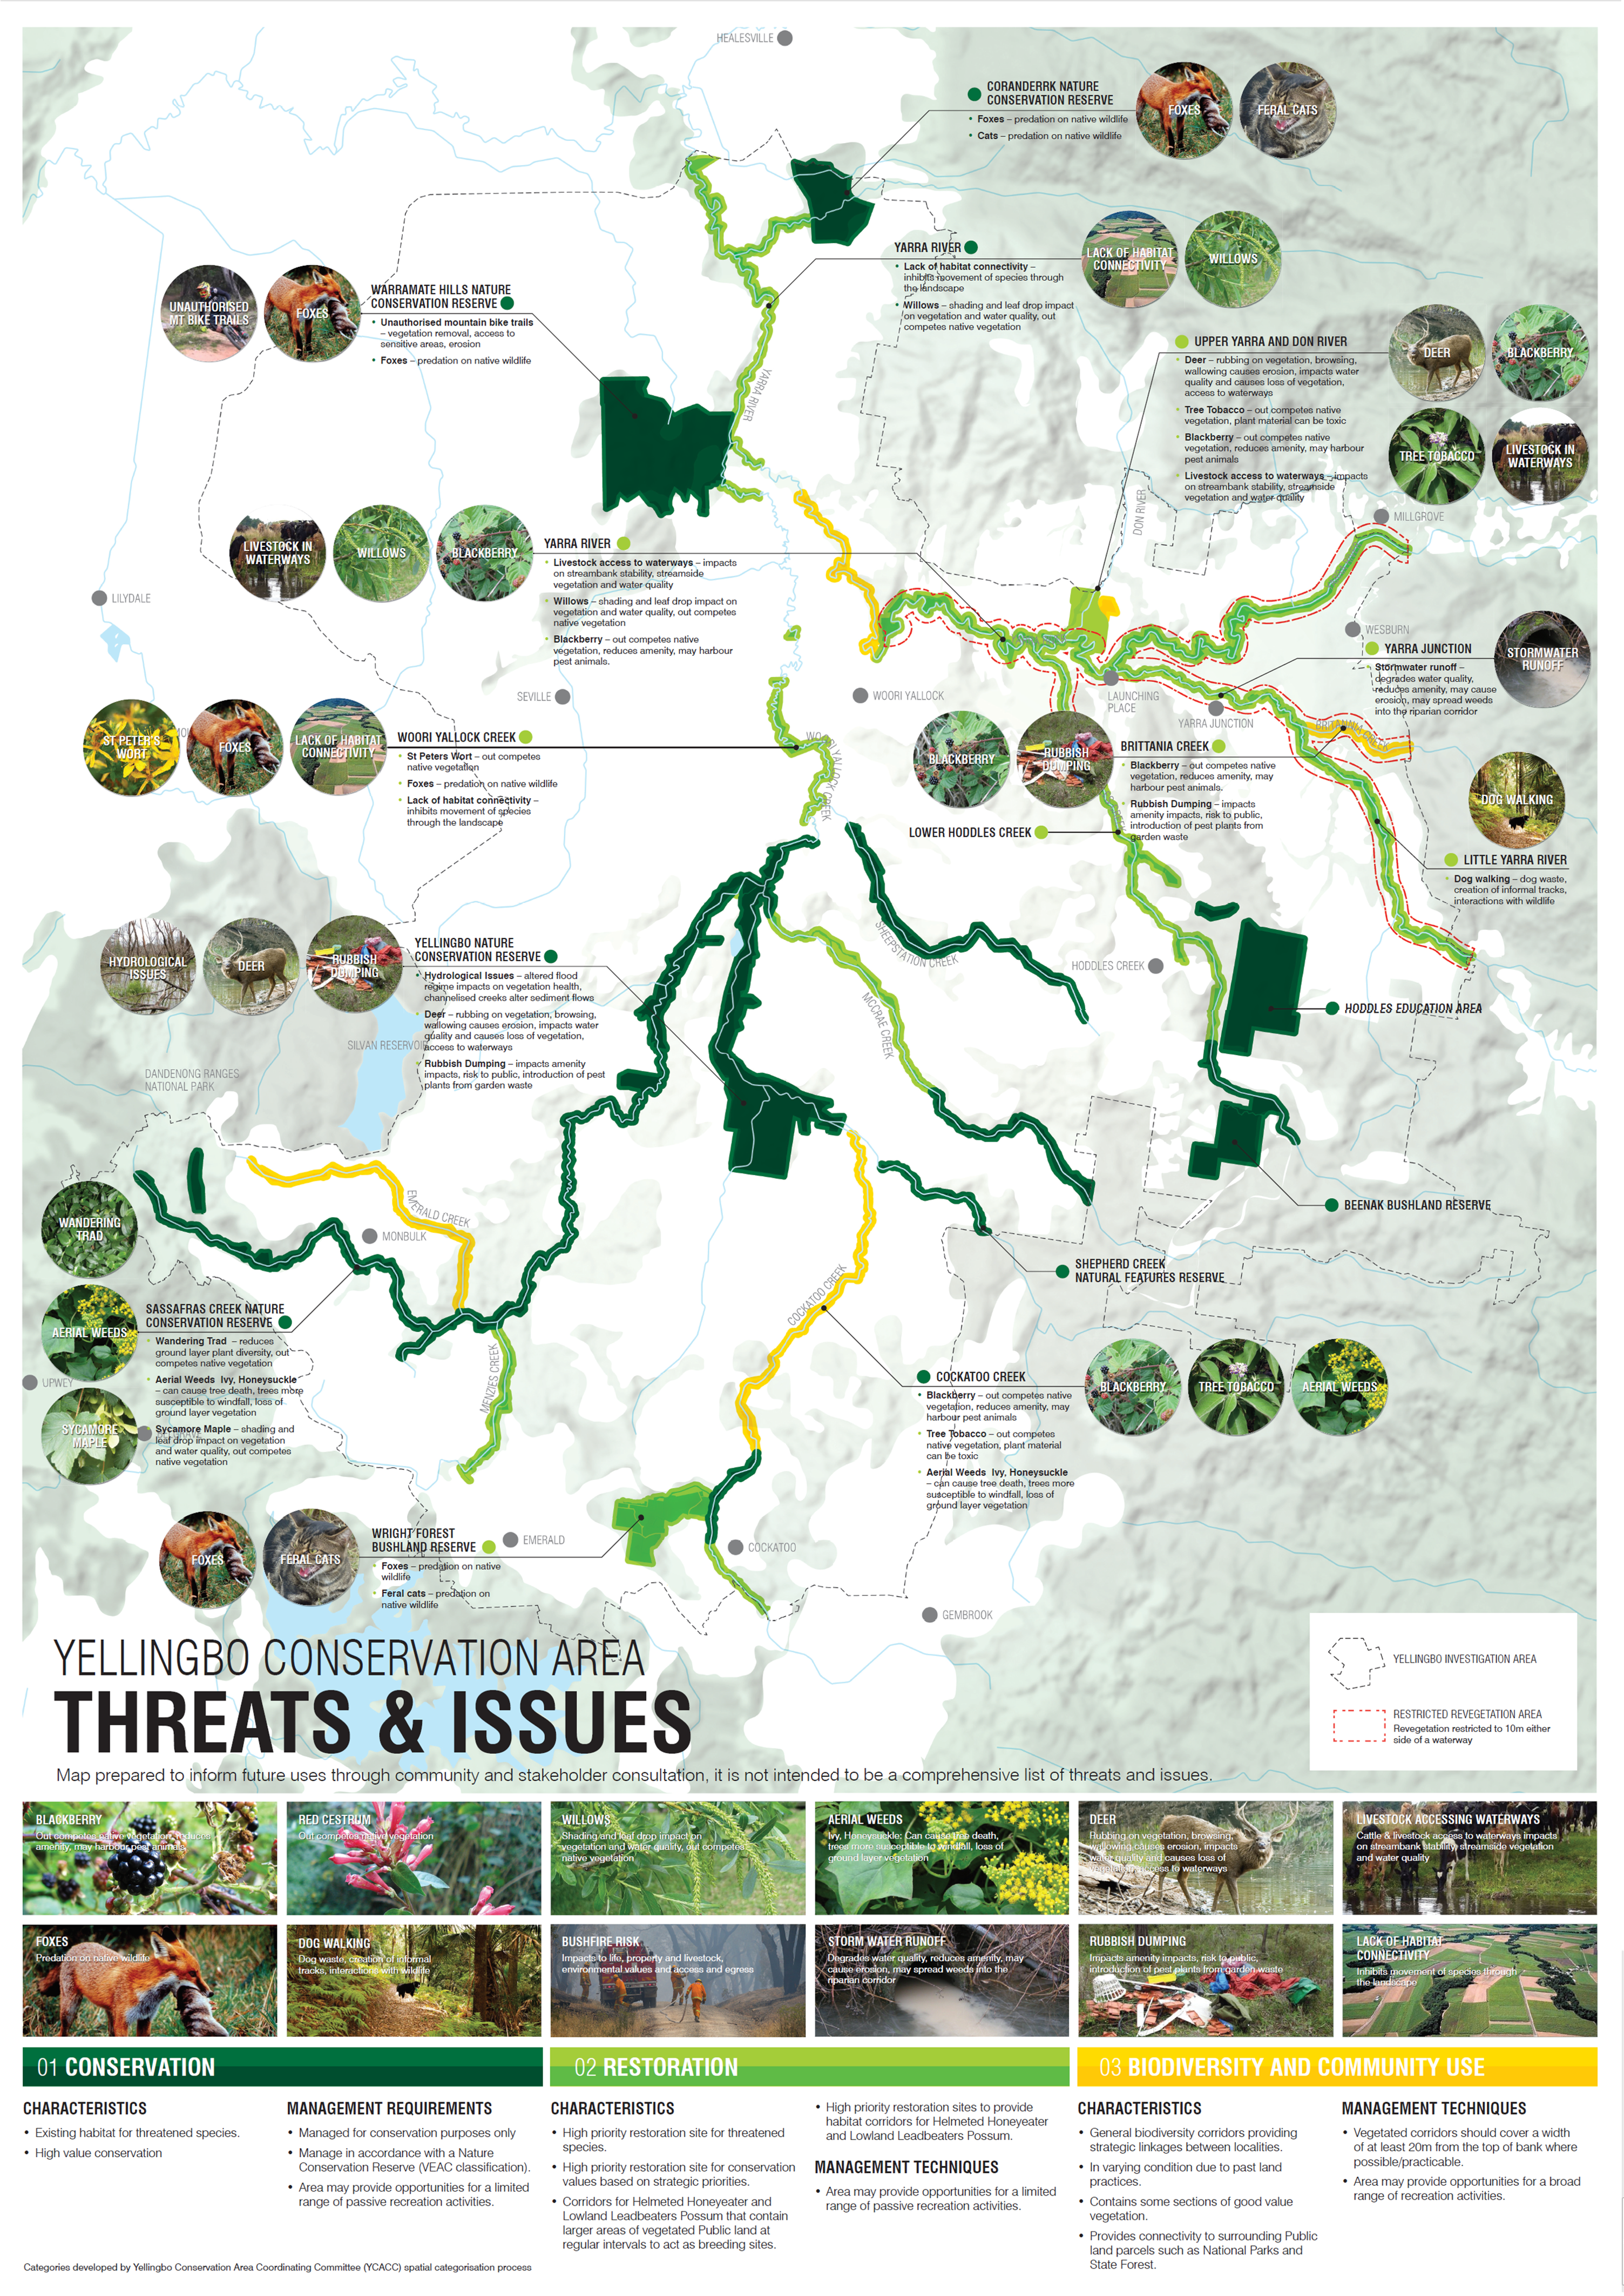 Image of map identifying the major threats in the Conservation Area such as pest animal species like deer, foxes and rabbits, as well as weed species like Blackberry, Willows and Tree Tobacco. Other threats included in the image include storm water runoff, dog walking, cattle in waterways and a lack of habitat connectivity.